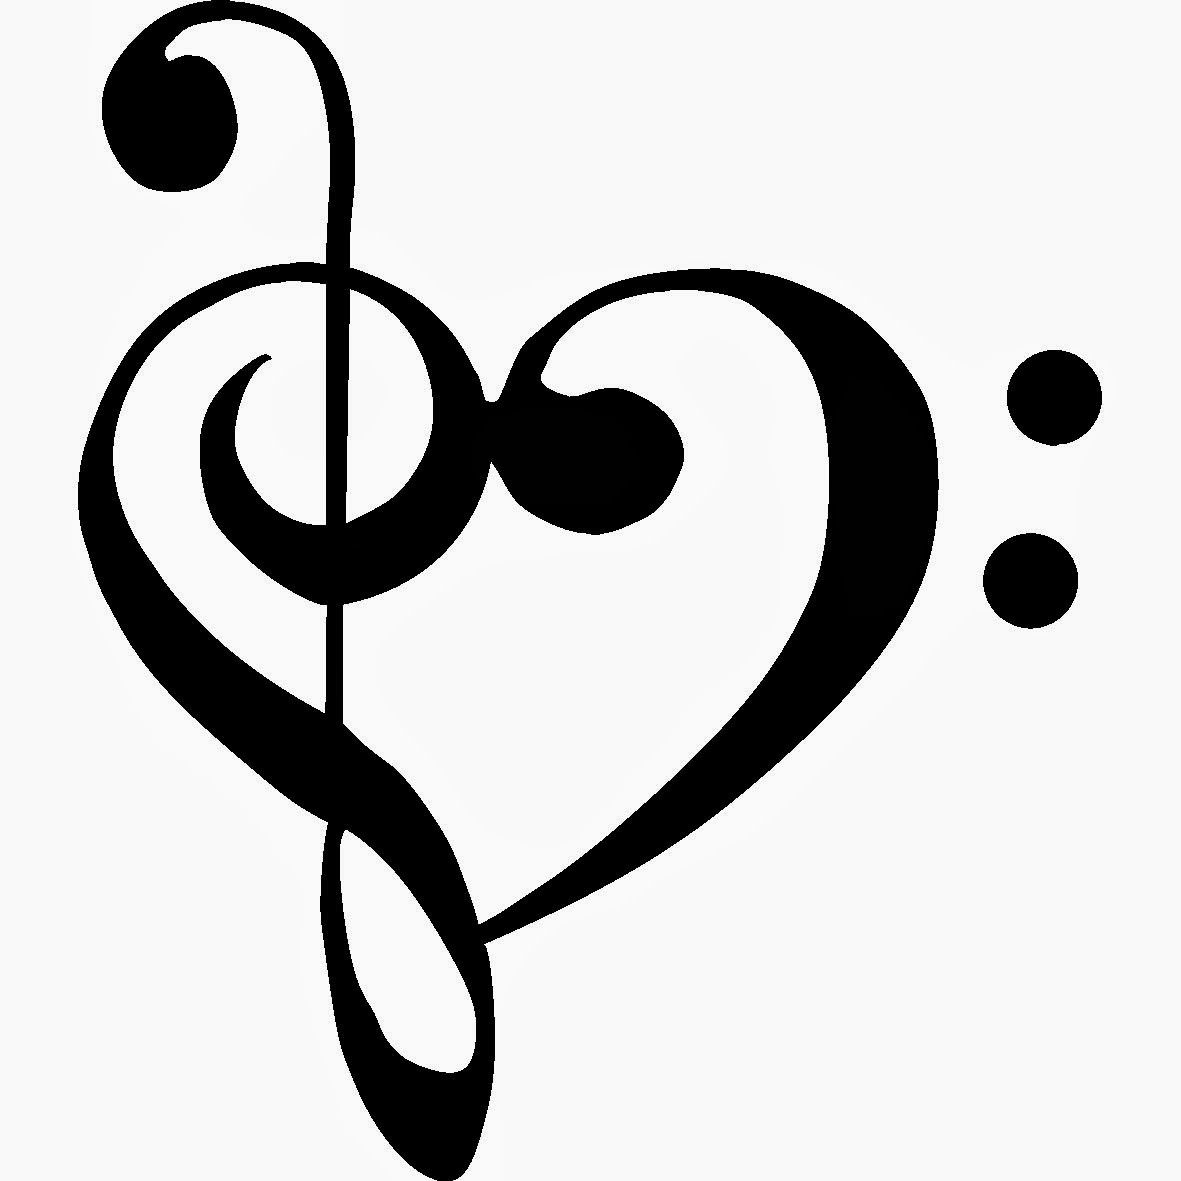 1181x1181 Music Note Tattoos Artwork Music Note Heart Tattoo Music